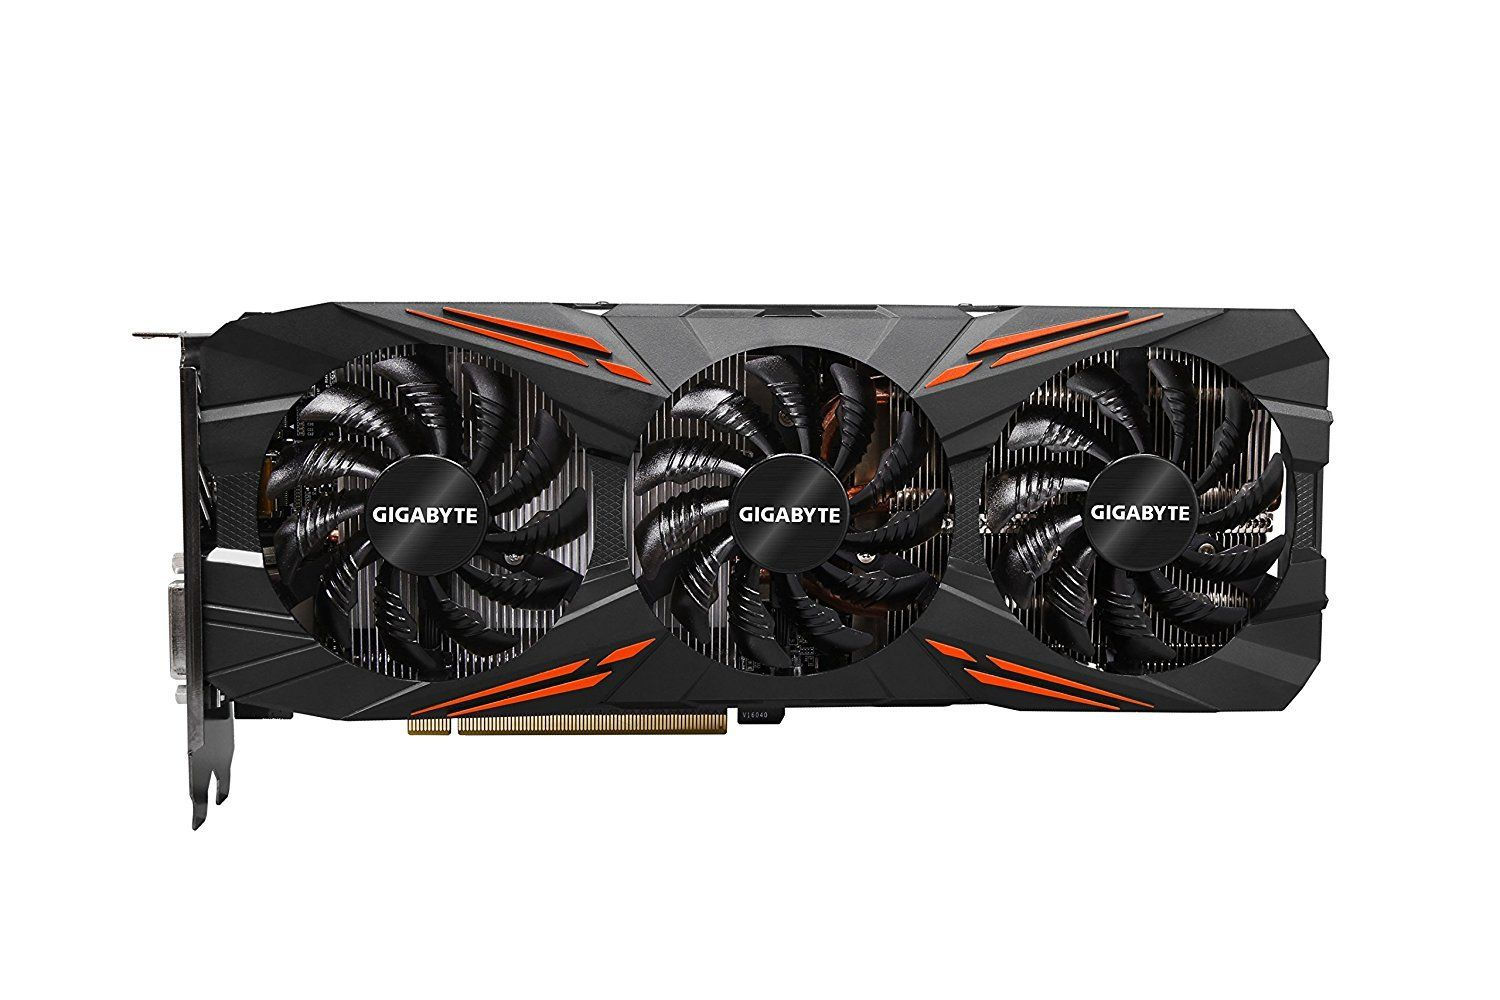 Power By Geforce Gtx 1070 Ti Integrated With 8gb Gddr5 256bit Memory Featured Windforce 3x Protection Metal Back Plate Rgb Fusion 16 7m Cust